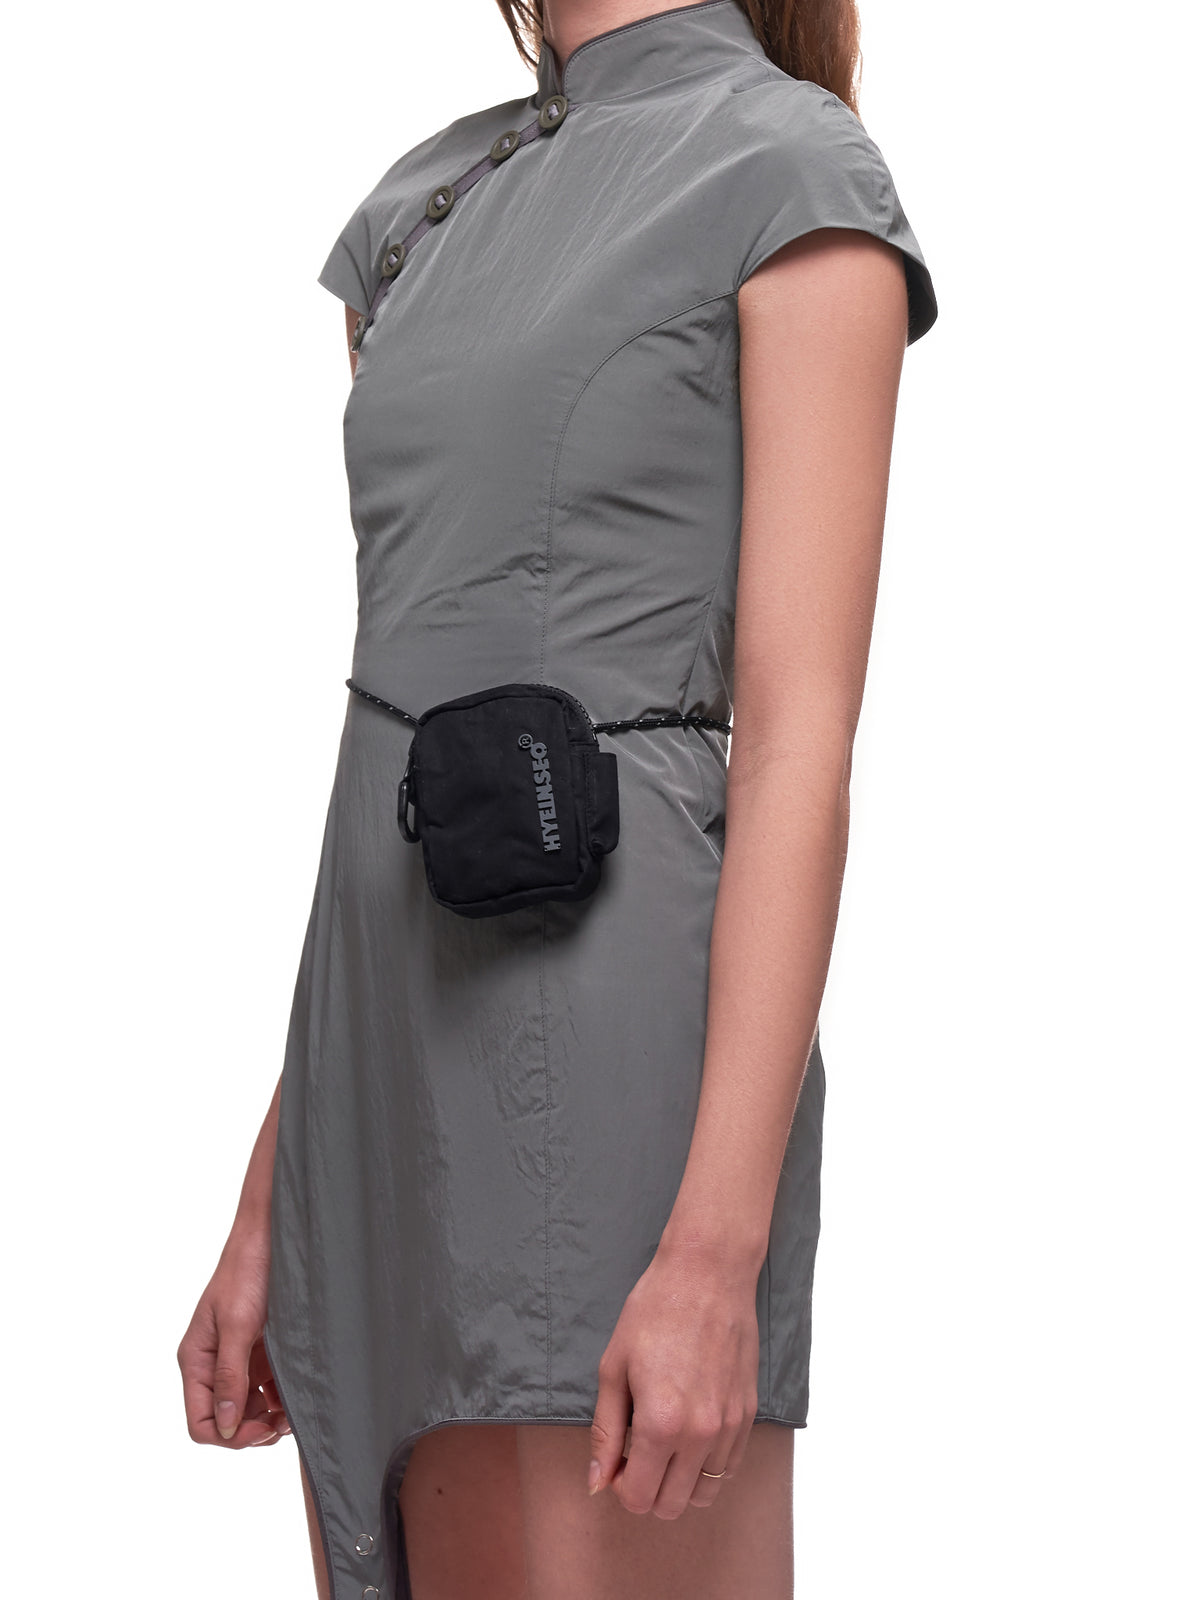 Qipao Dress with Cigarette Pouch (D4G-GRAY)